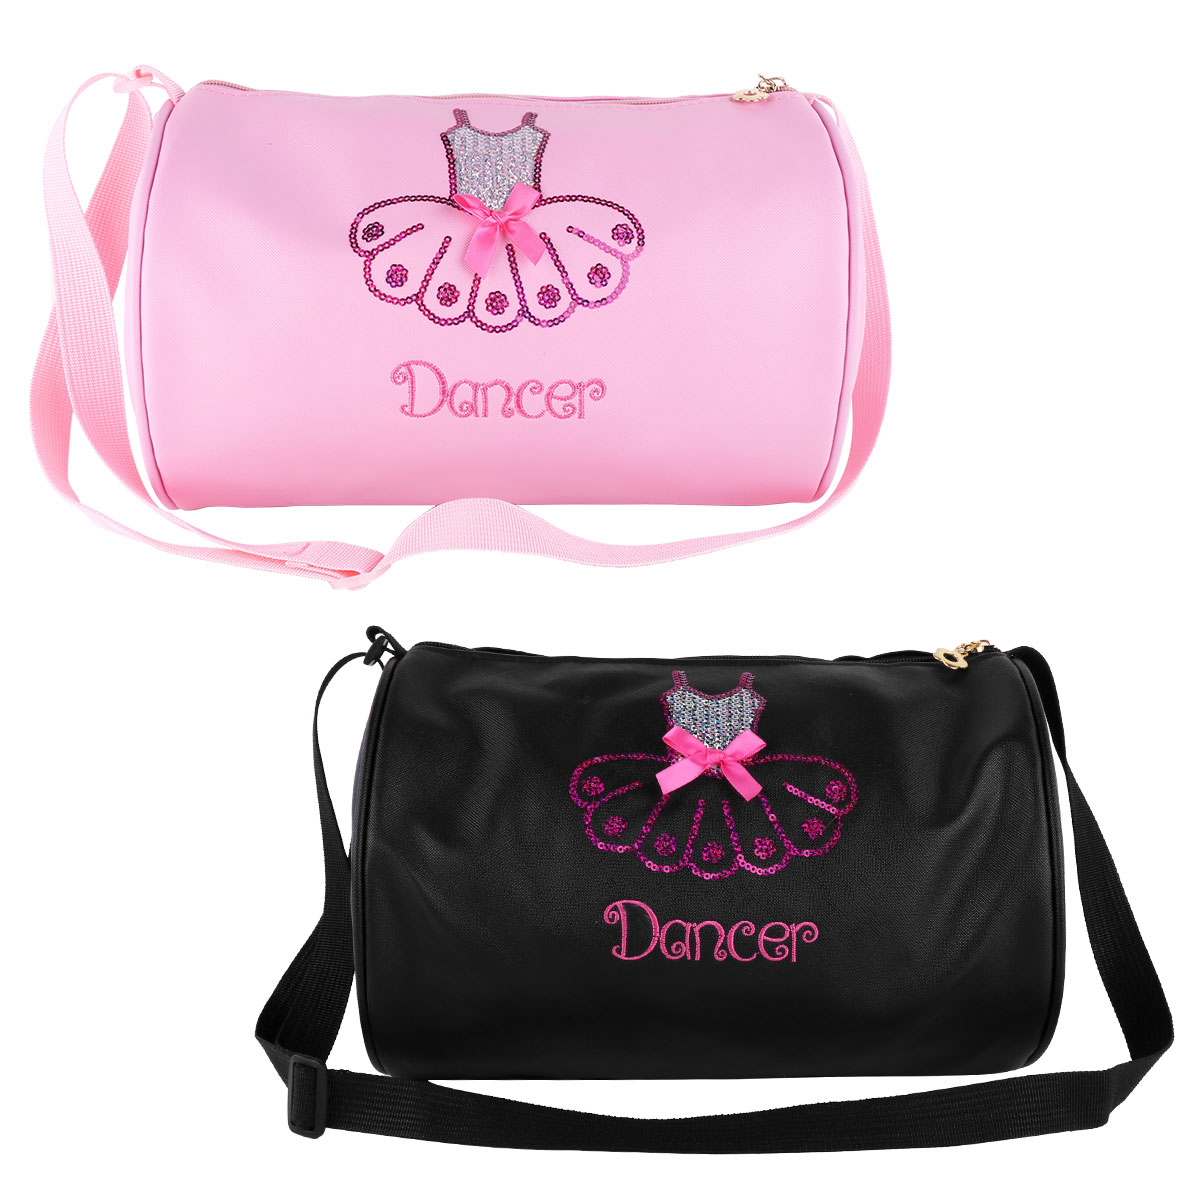 Luggage & Bags Tiaobug Kids Faux Leather Ballet Dance Bag Students School Backpack Paillettes Sequin Embroidery Shoe Girls Gym Ballet Backpack Elegant Appearance